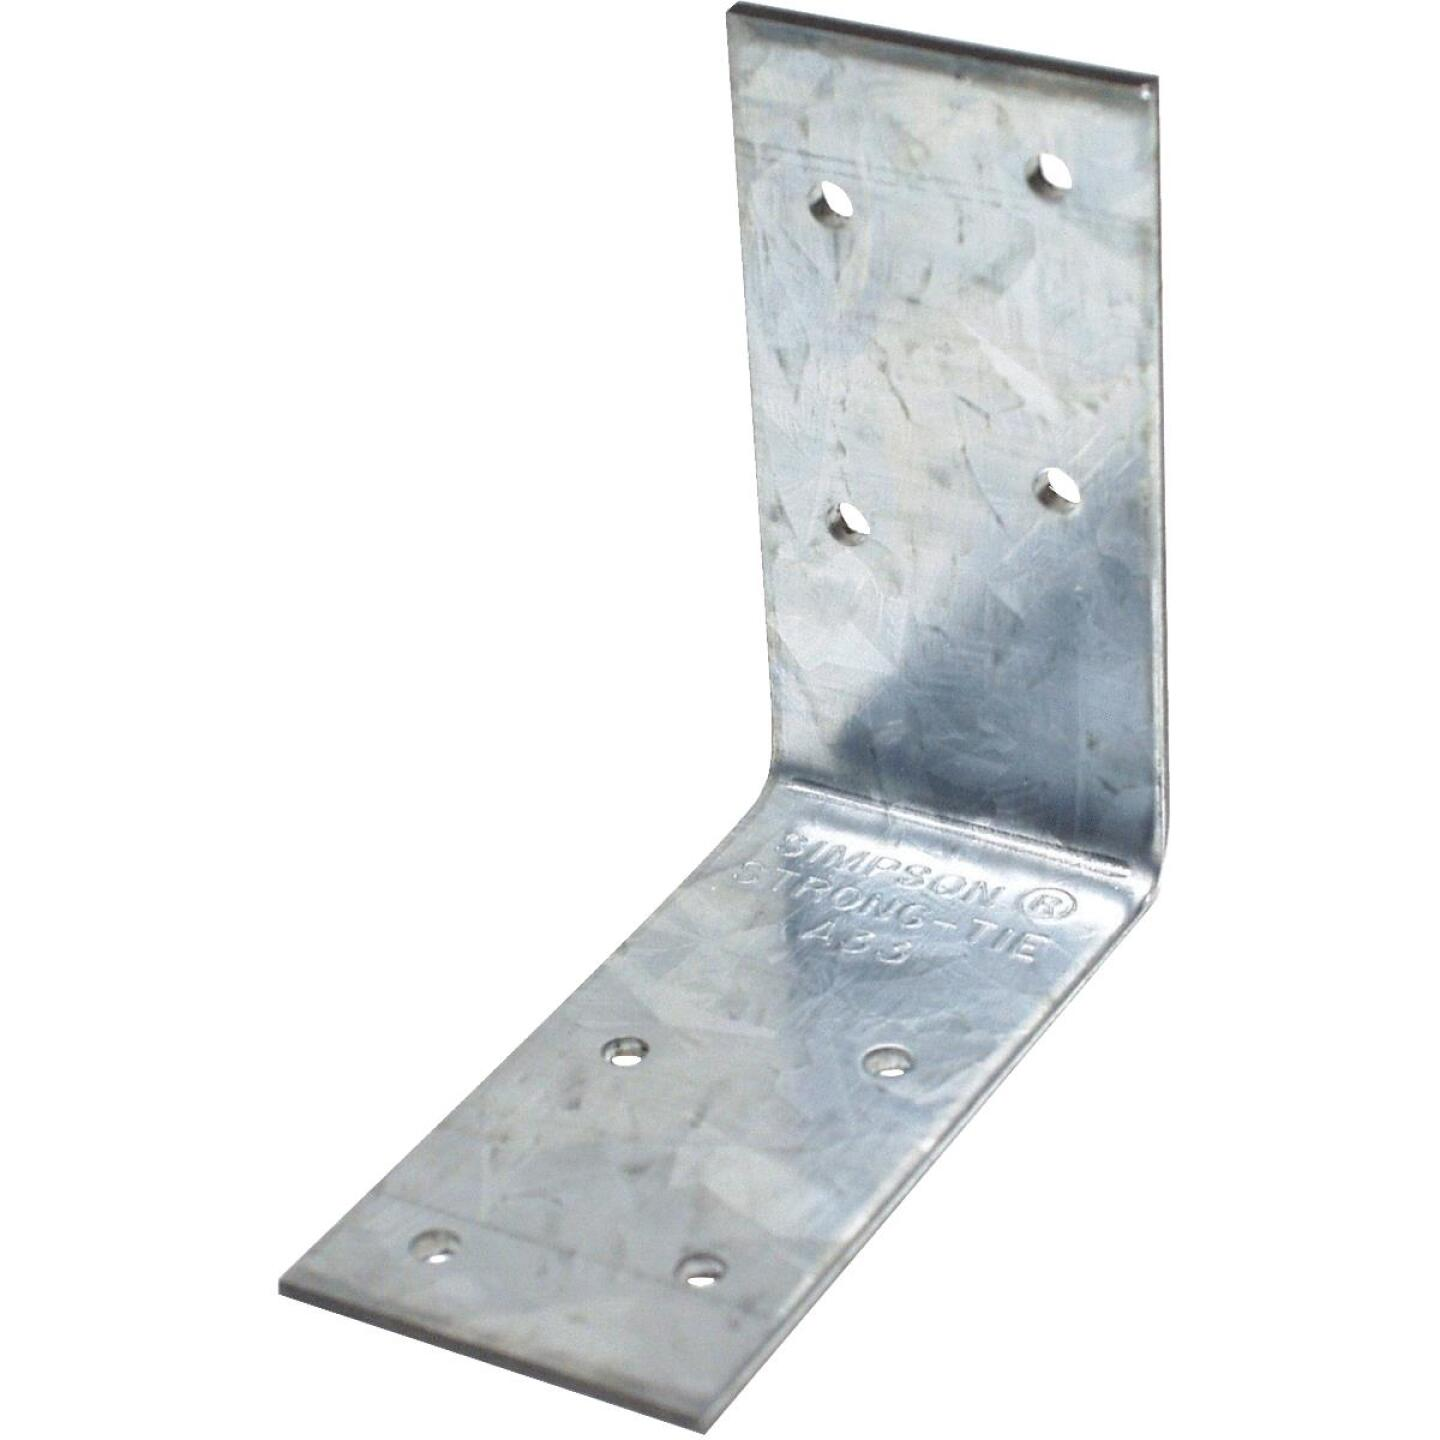 Simpson Strong-Tie 3 In. x 3 In. x 1-1/2 In. Galvanized Steel 12 ga Reinforcing Angle Image 1